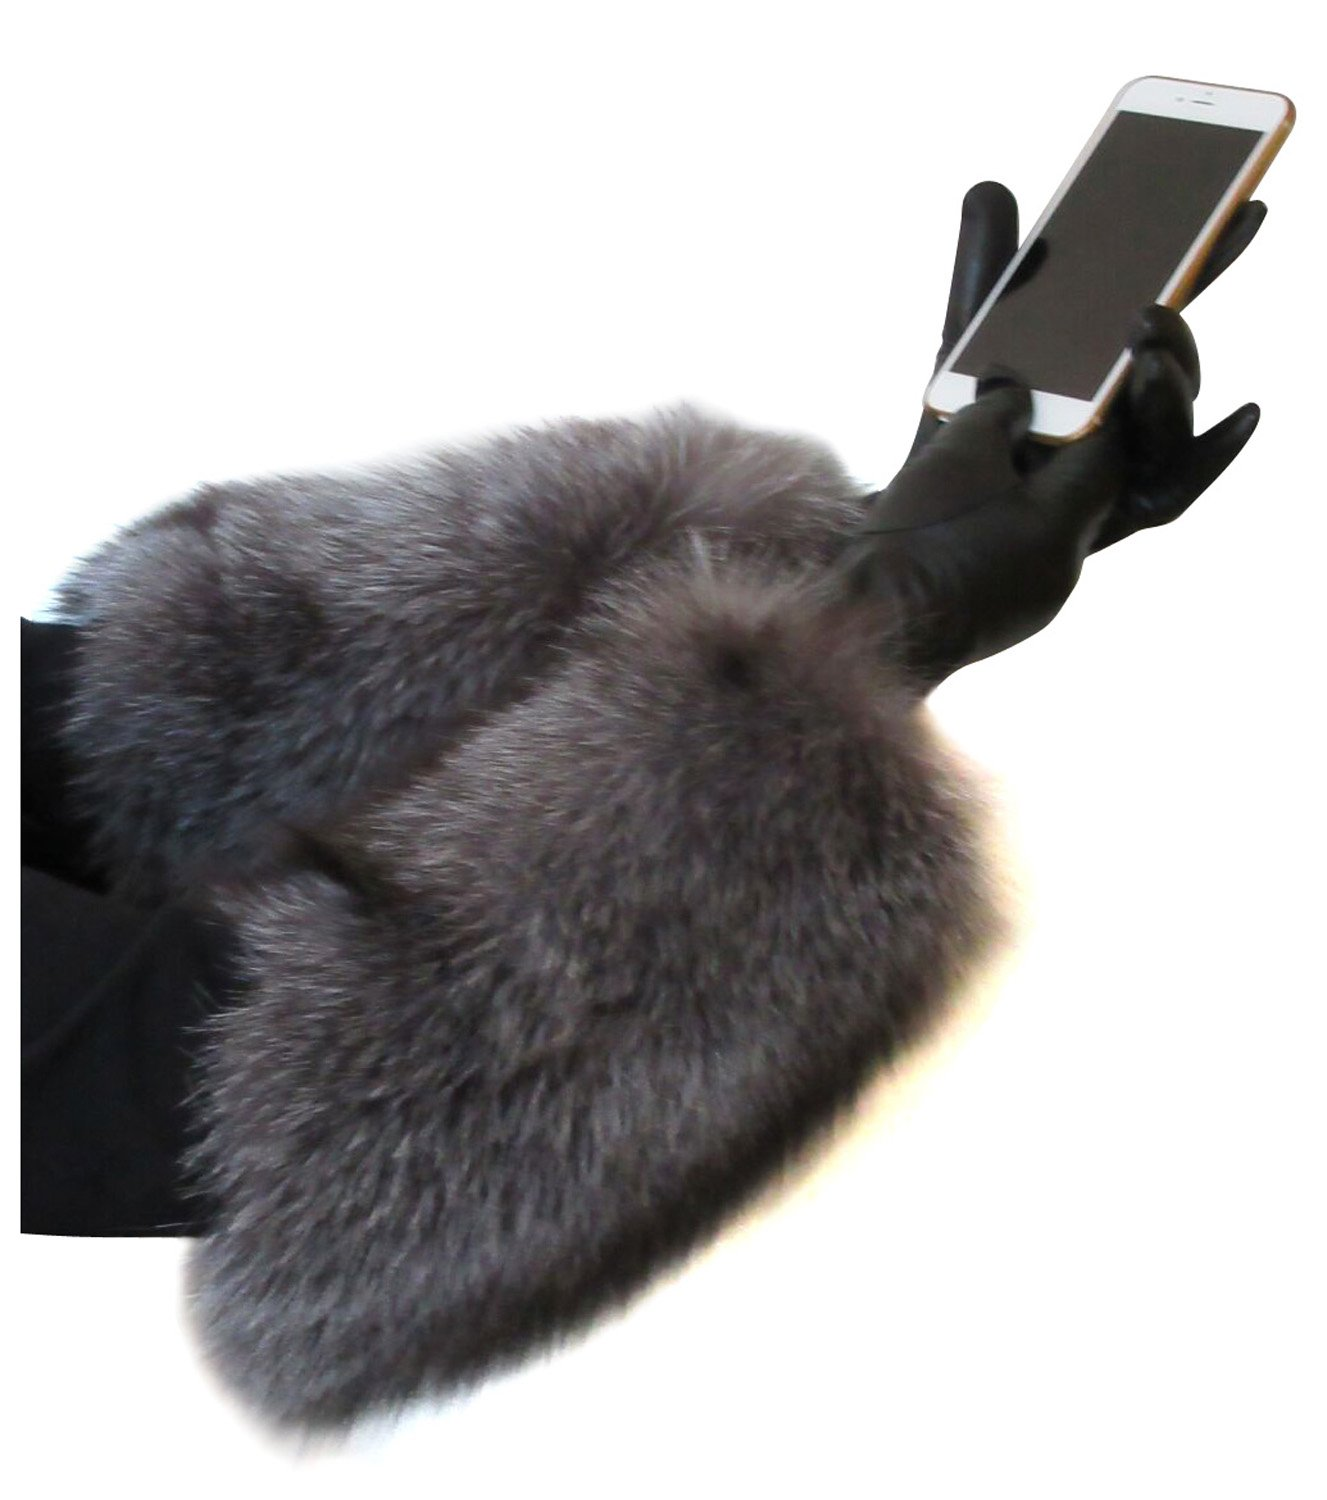 Black Cashmere Lined Leather Gloves Extended to Opera Length by Indigo Fox Cuffs 7.5 by FursNewYork (Image #4)